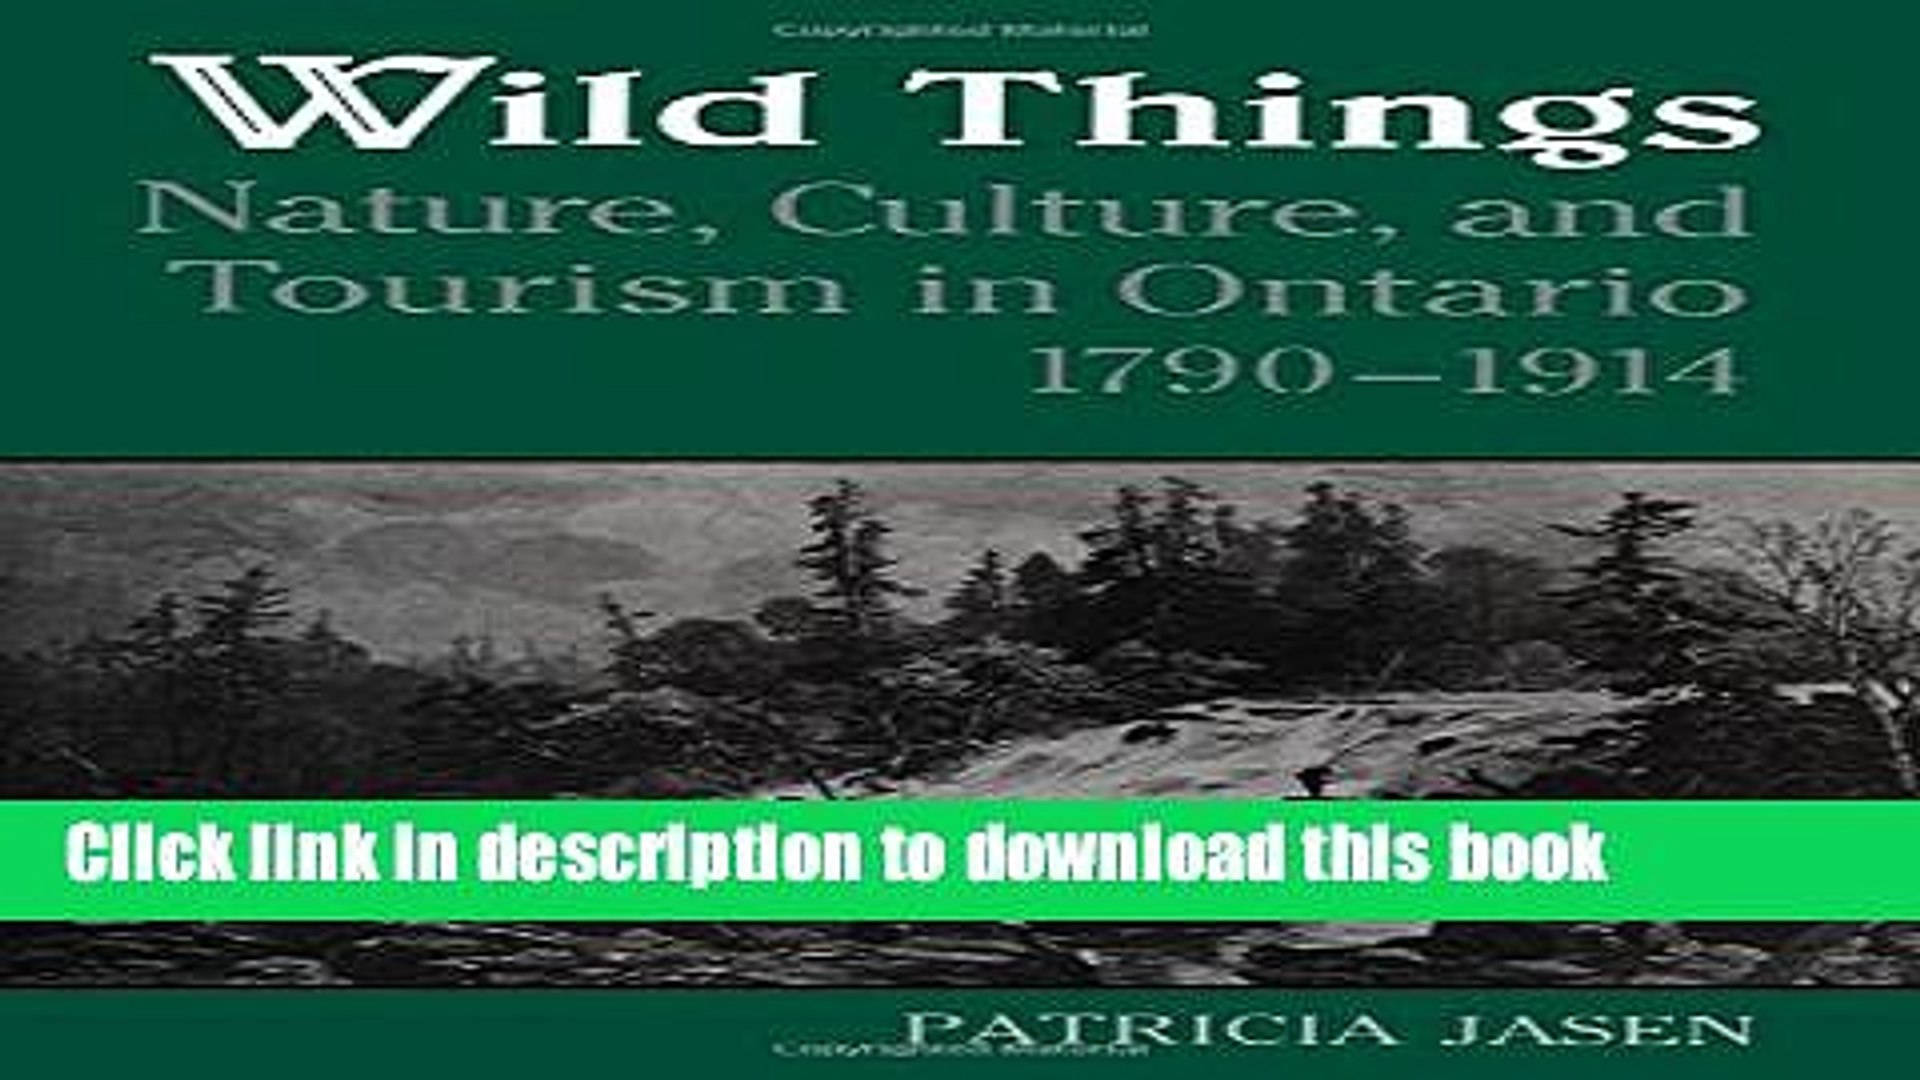 Ebook Wild Things: Nature, Culture, and Tourism in Ontario, 1790-1914 Full Online